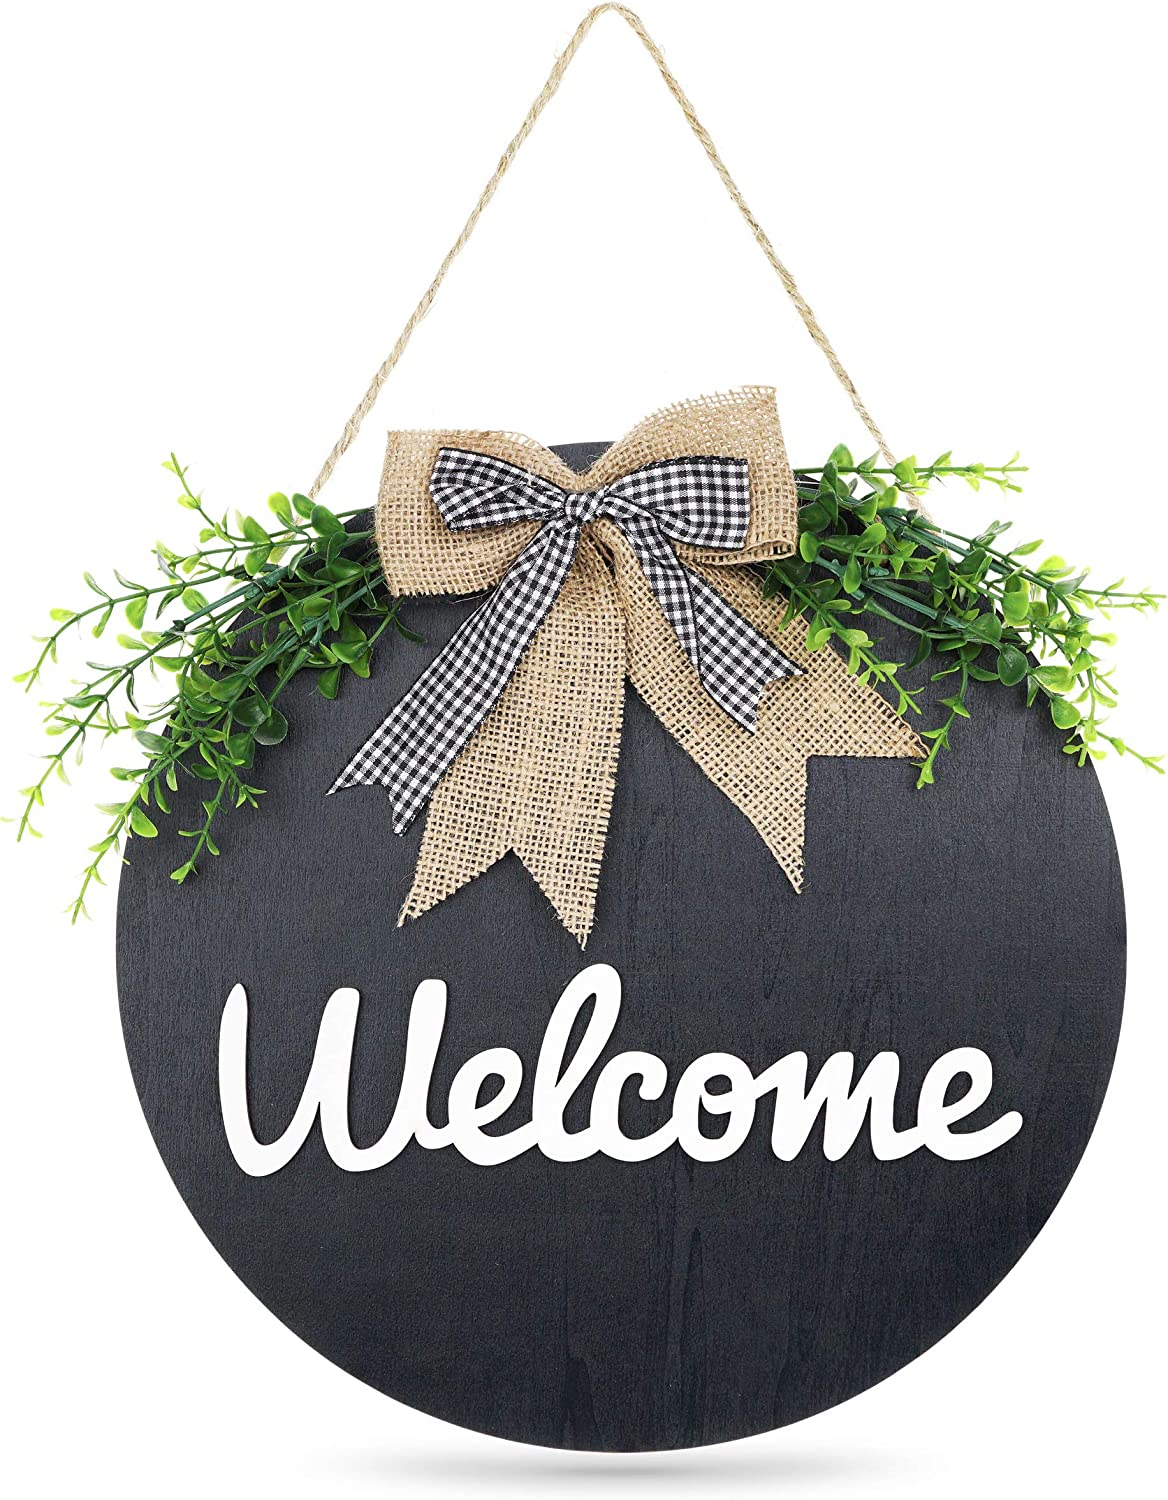 Welcome Sign for Front Door Porch Signs Wood Round Hanging Farmhouse Wreath Housewarming Gift Rustic Home Decor Door Wreaths Front Door Outside Decorations